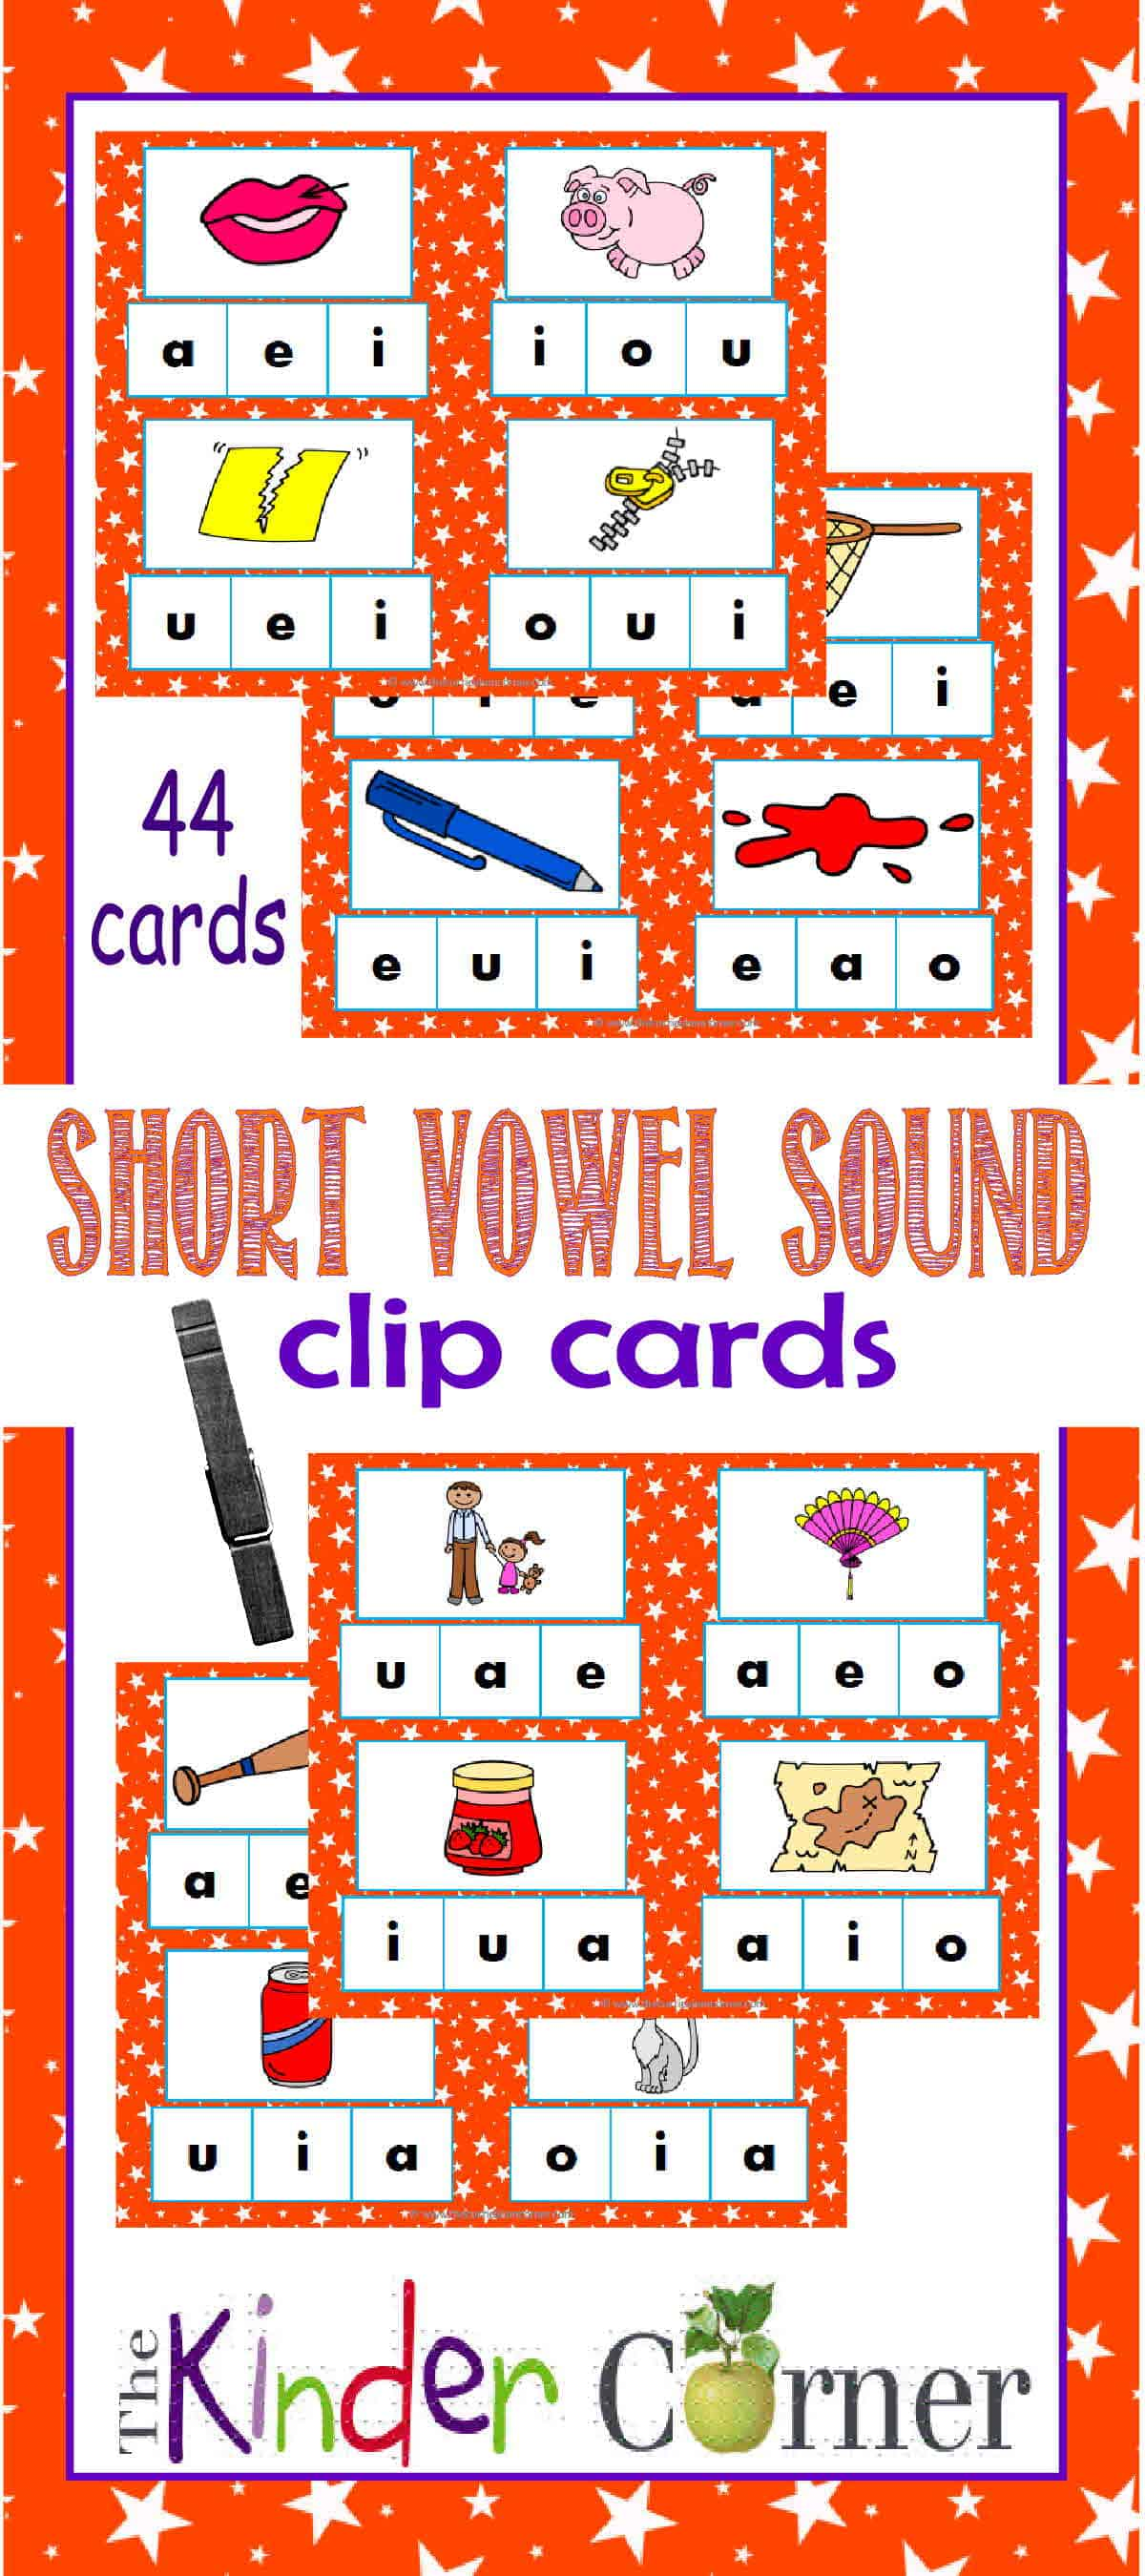 Short Vowel Sound Clip Cards